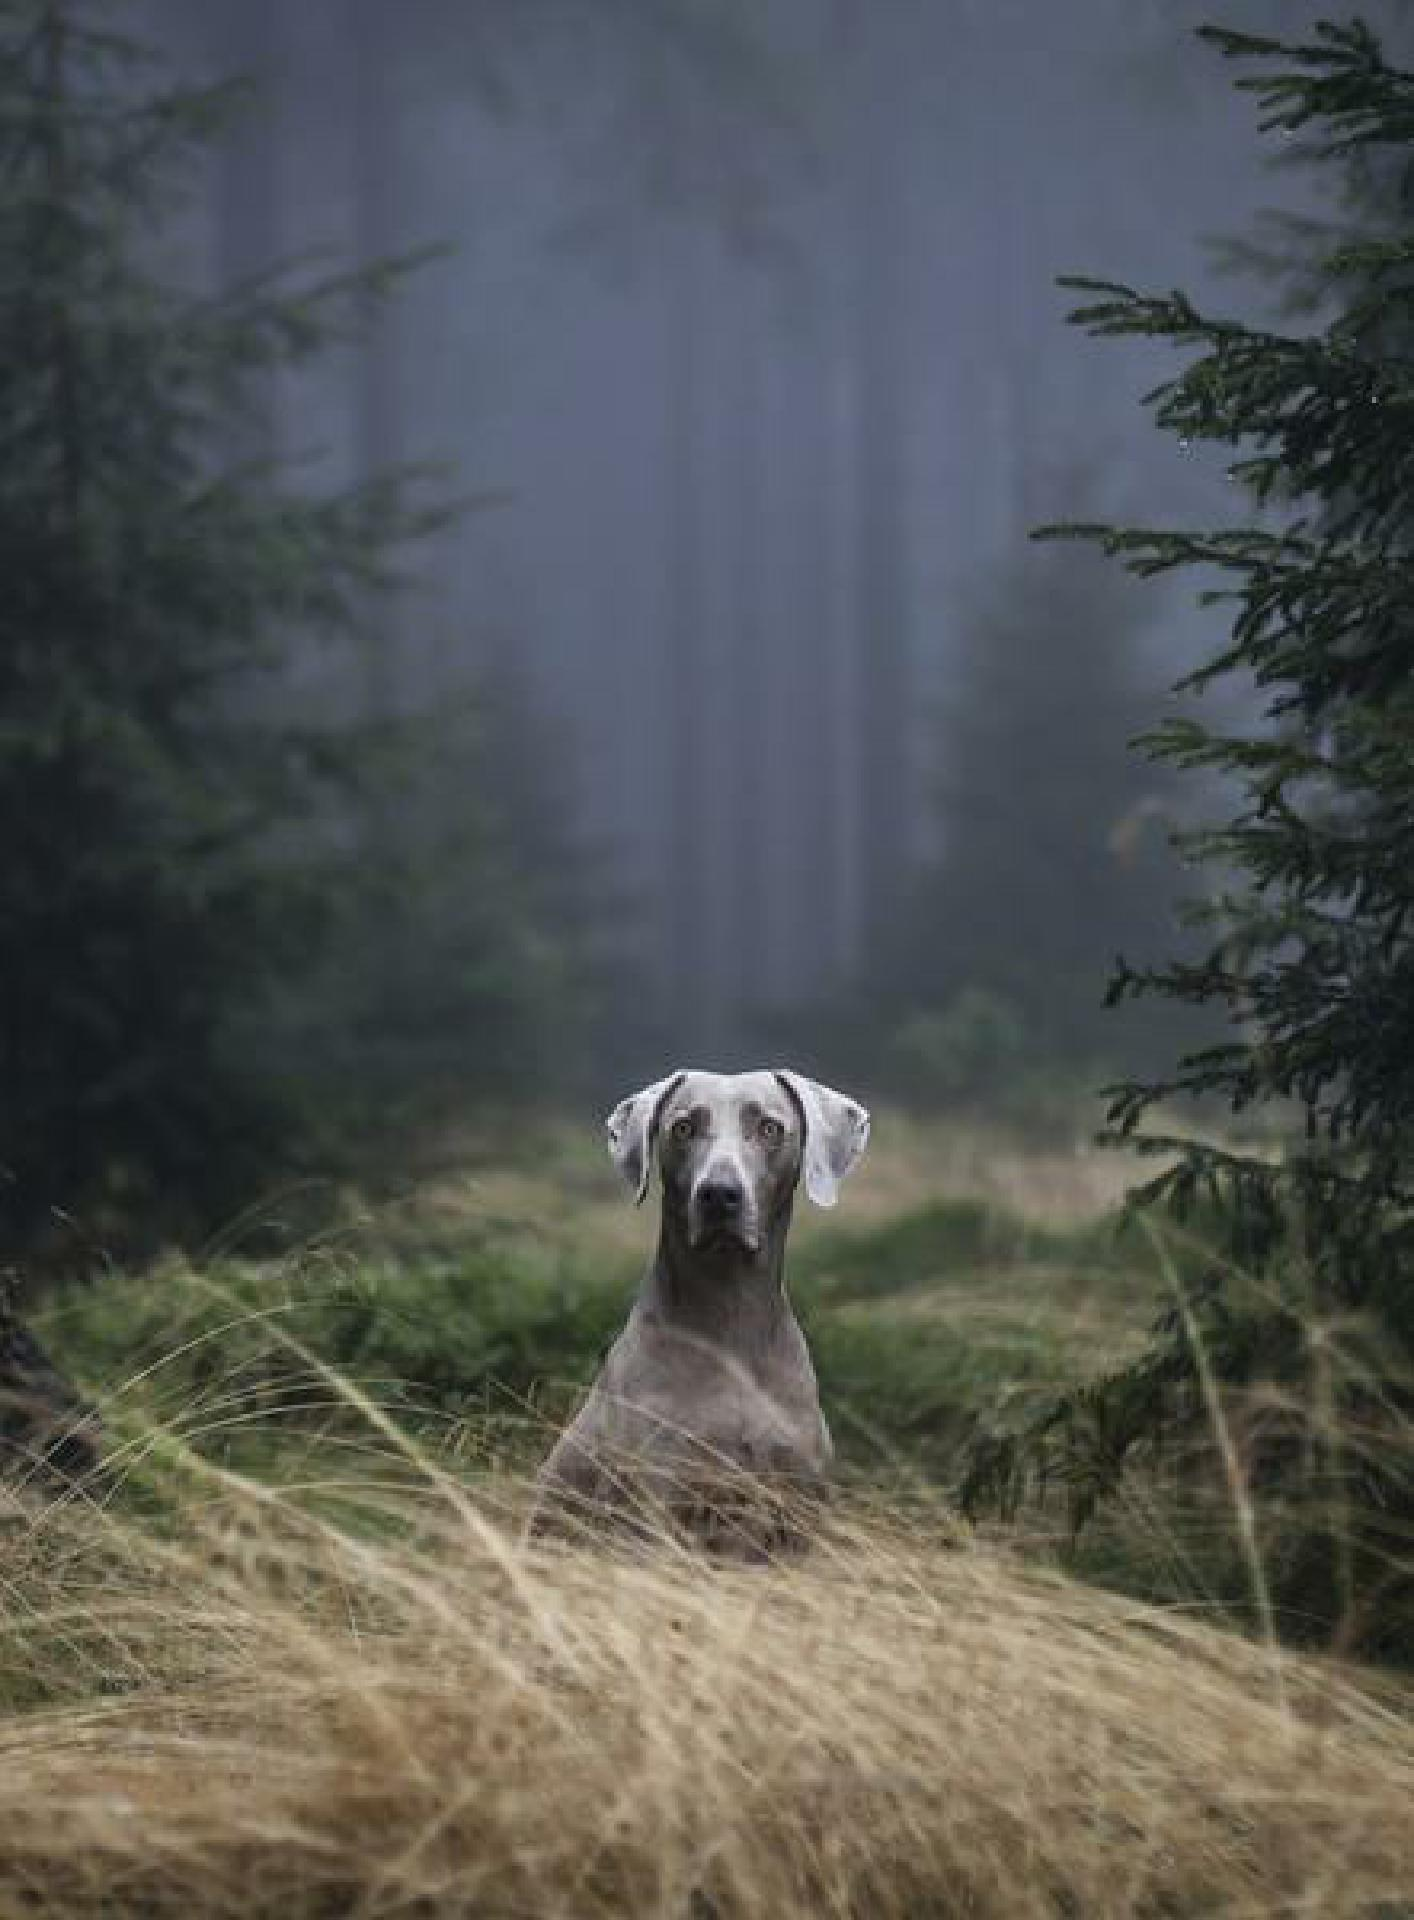 14 Sep 2014, Germany --- Weimaraner, hunting dog, in the woods, Thuringian Forest, Thuringia, Germany, Europe --- Image by © Nordreisender/imageBROKER/Corbis